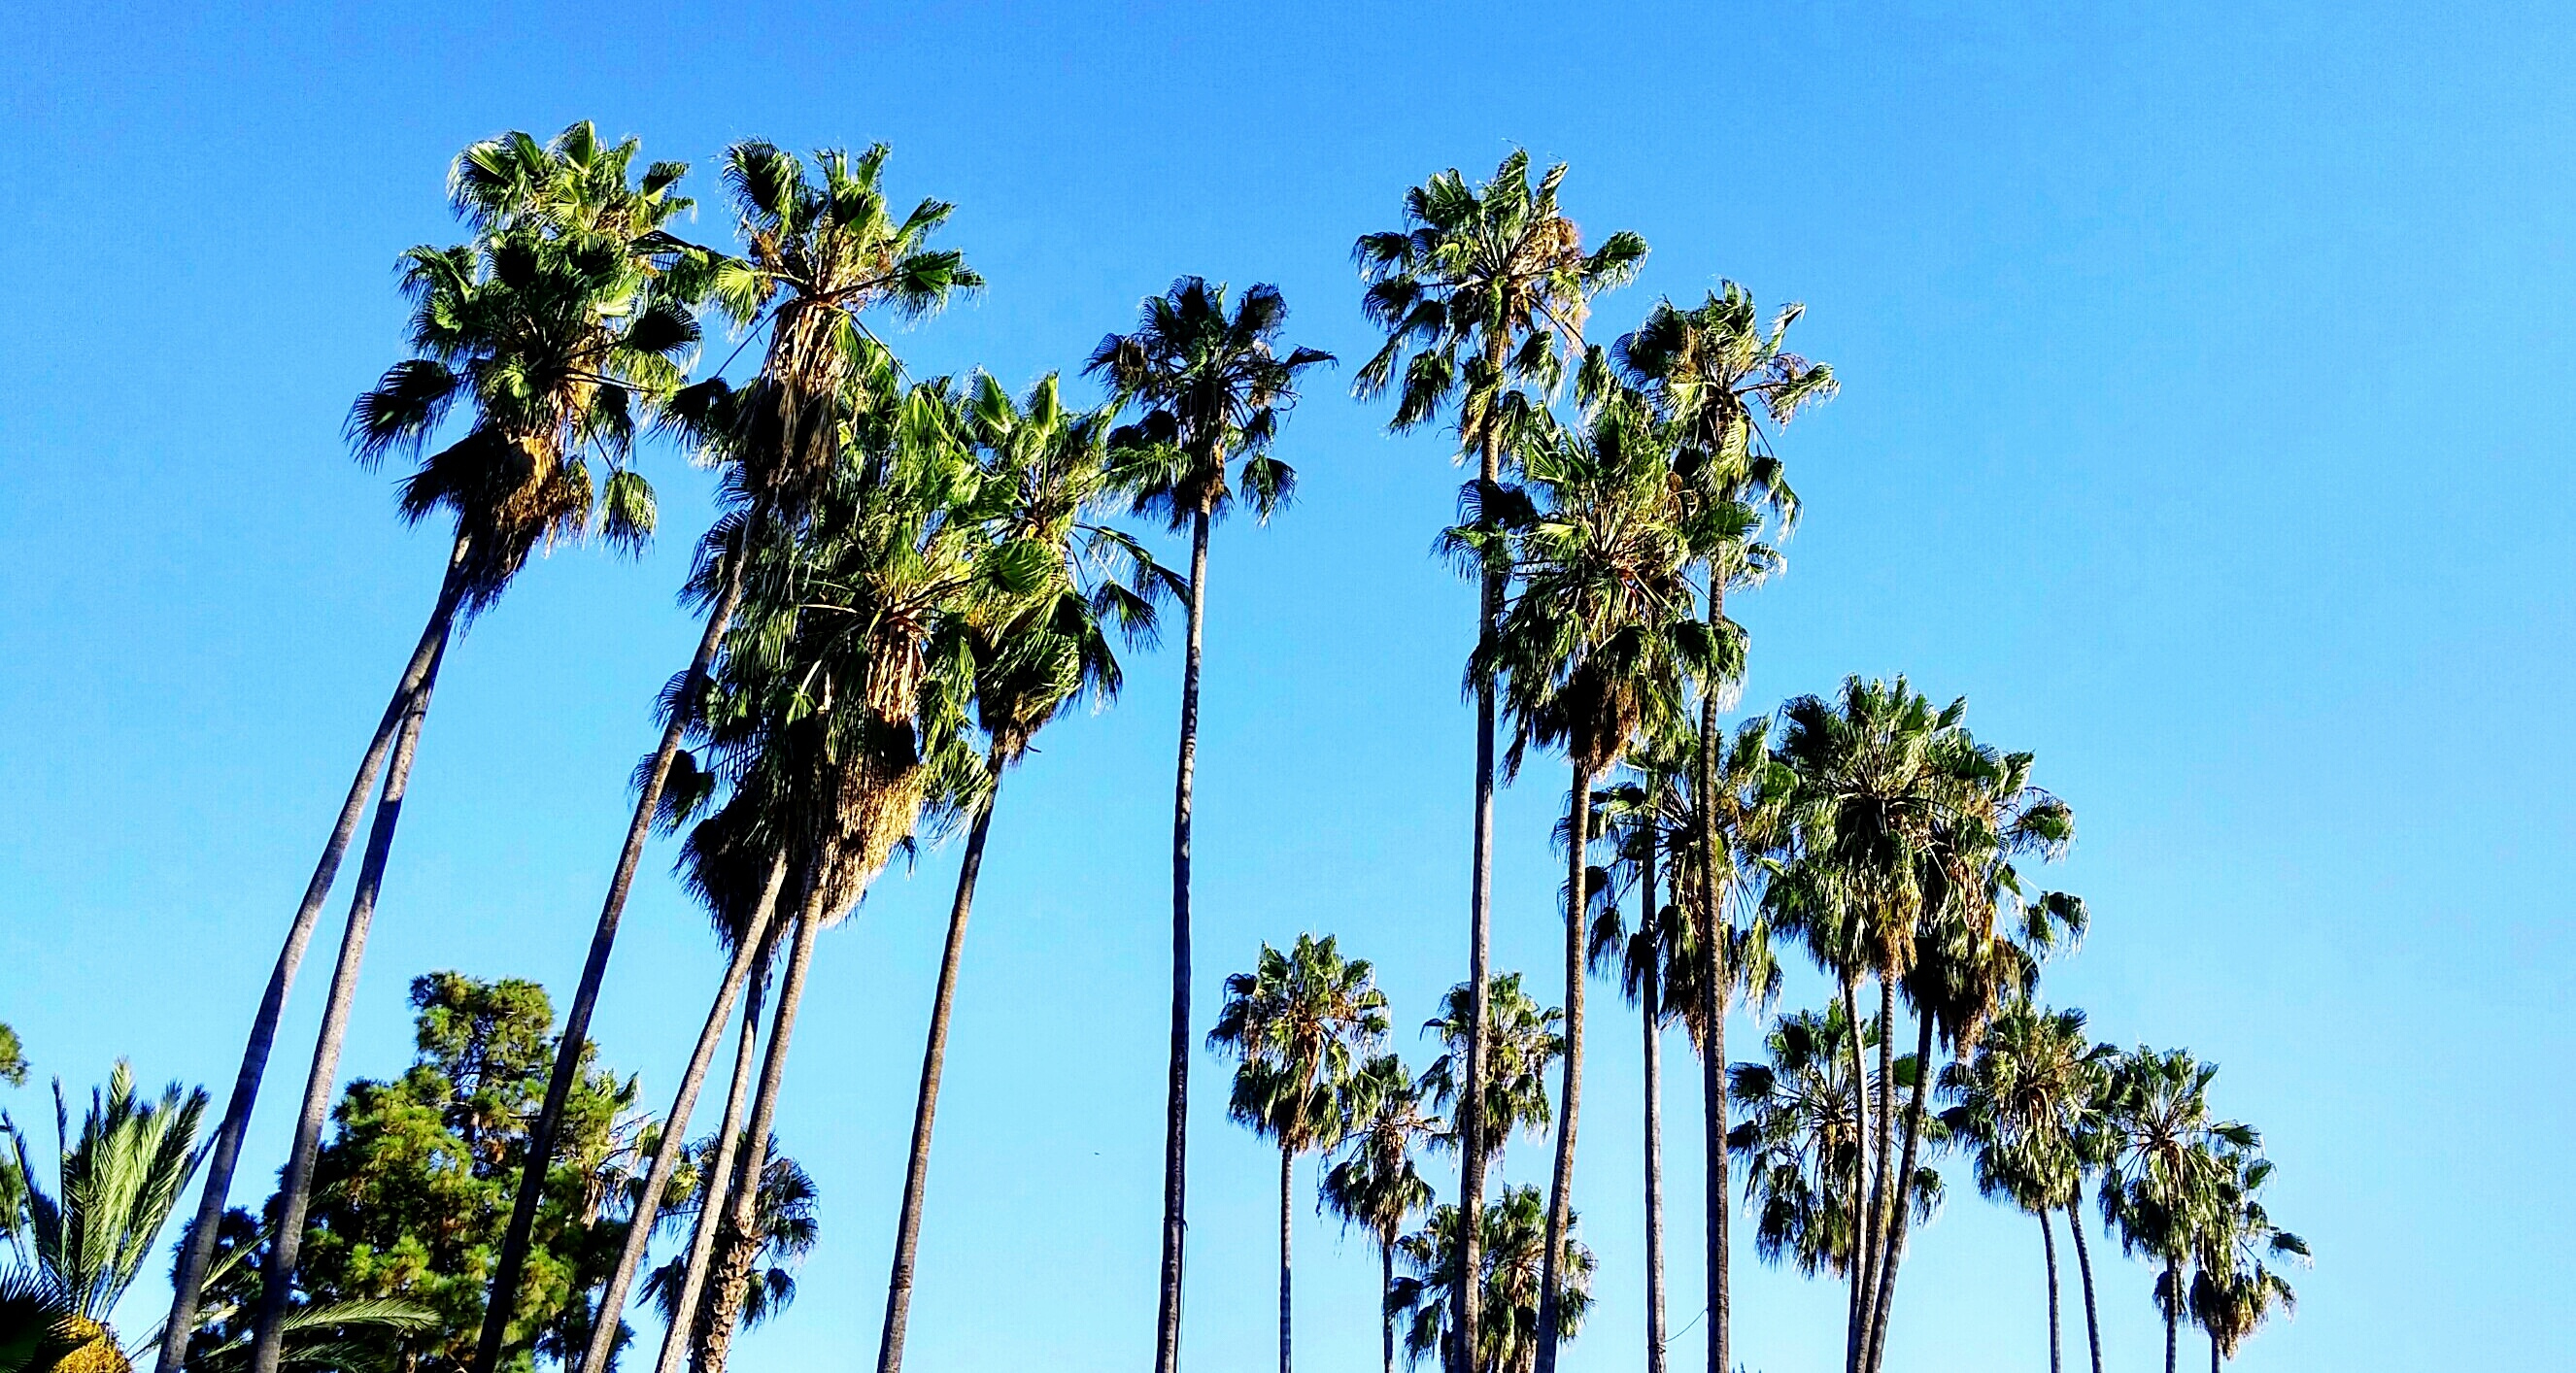 Los Angeles might have to replace its iconic palm trees